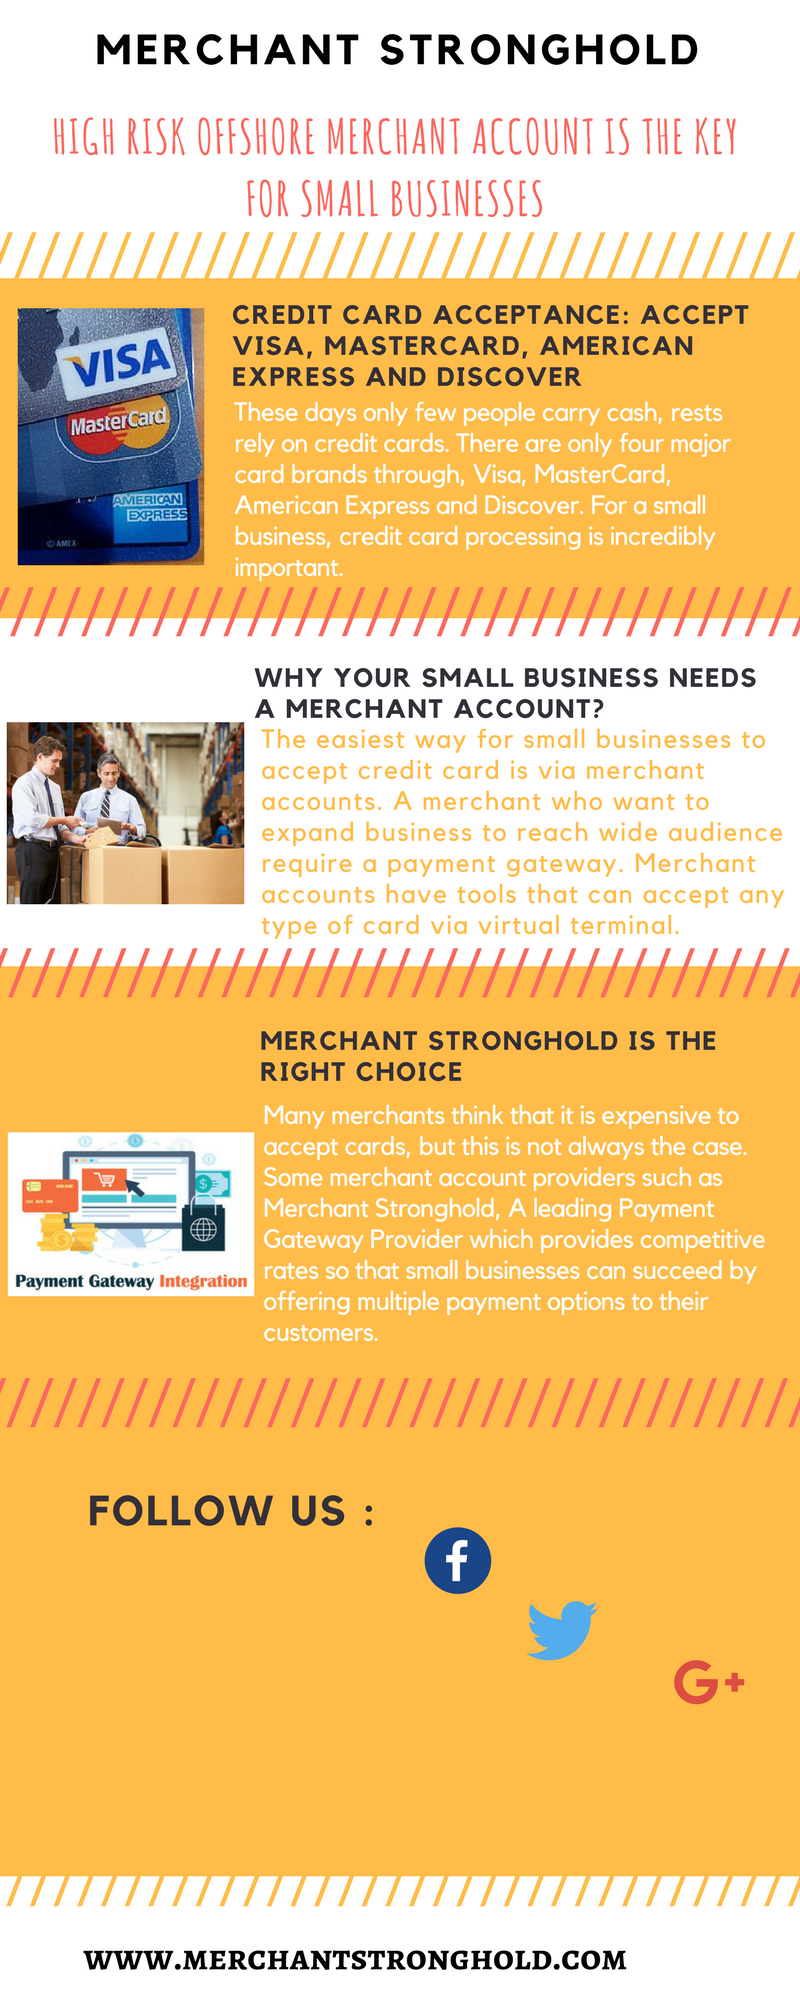 You need a merchant account to succeed if you are a small business ...